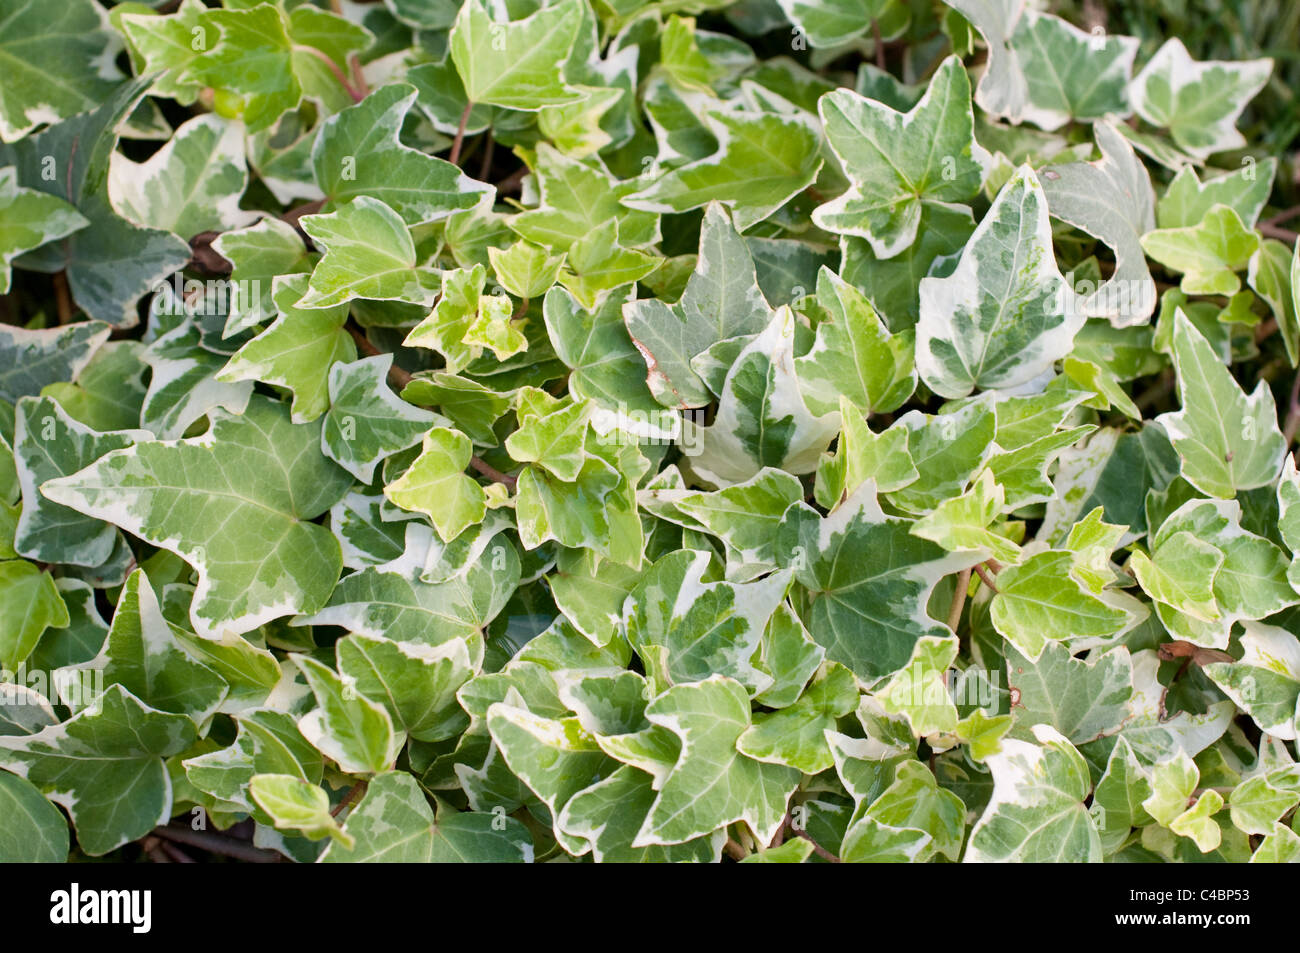 Background of variegated ivy - Stock Image